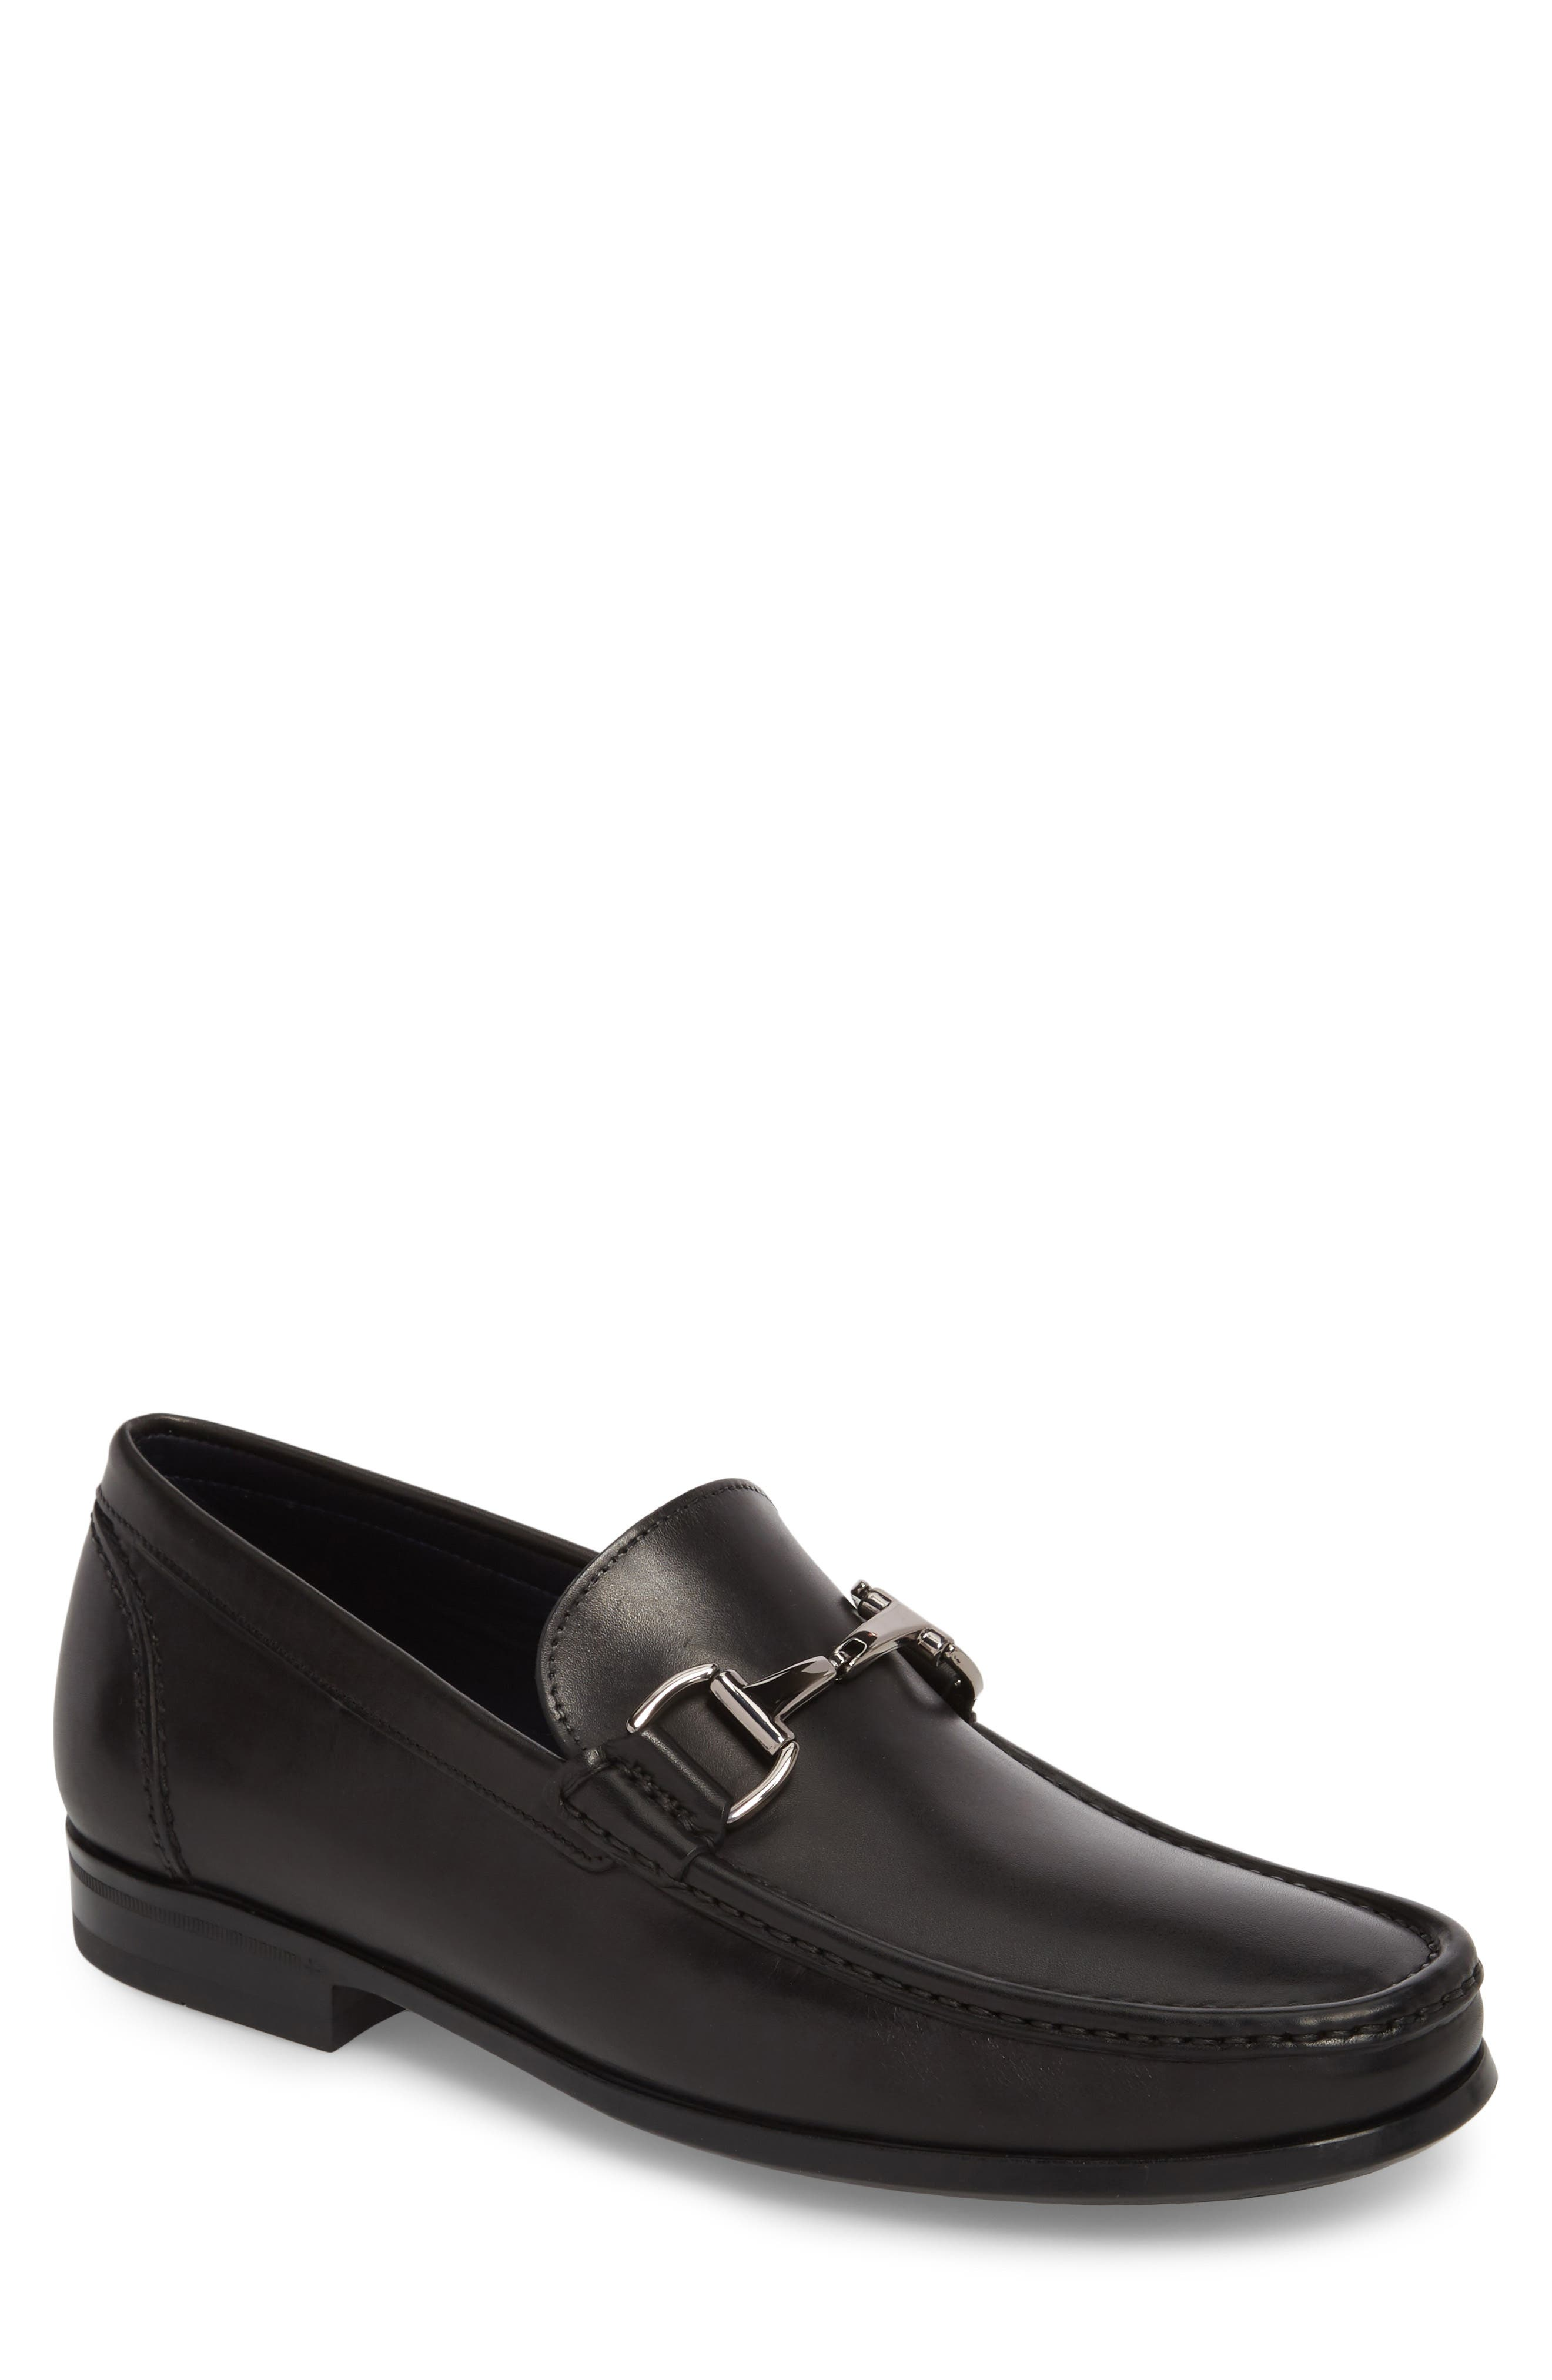 Gio Bit Loafer,                             Main thumbnail 1, color,                             Black Leather